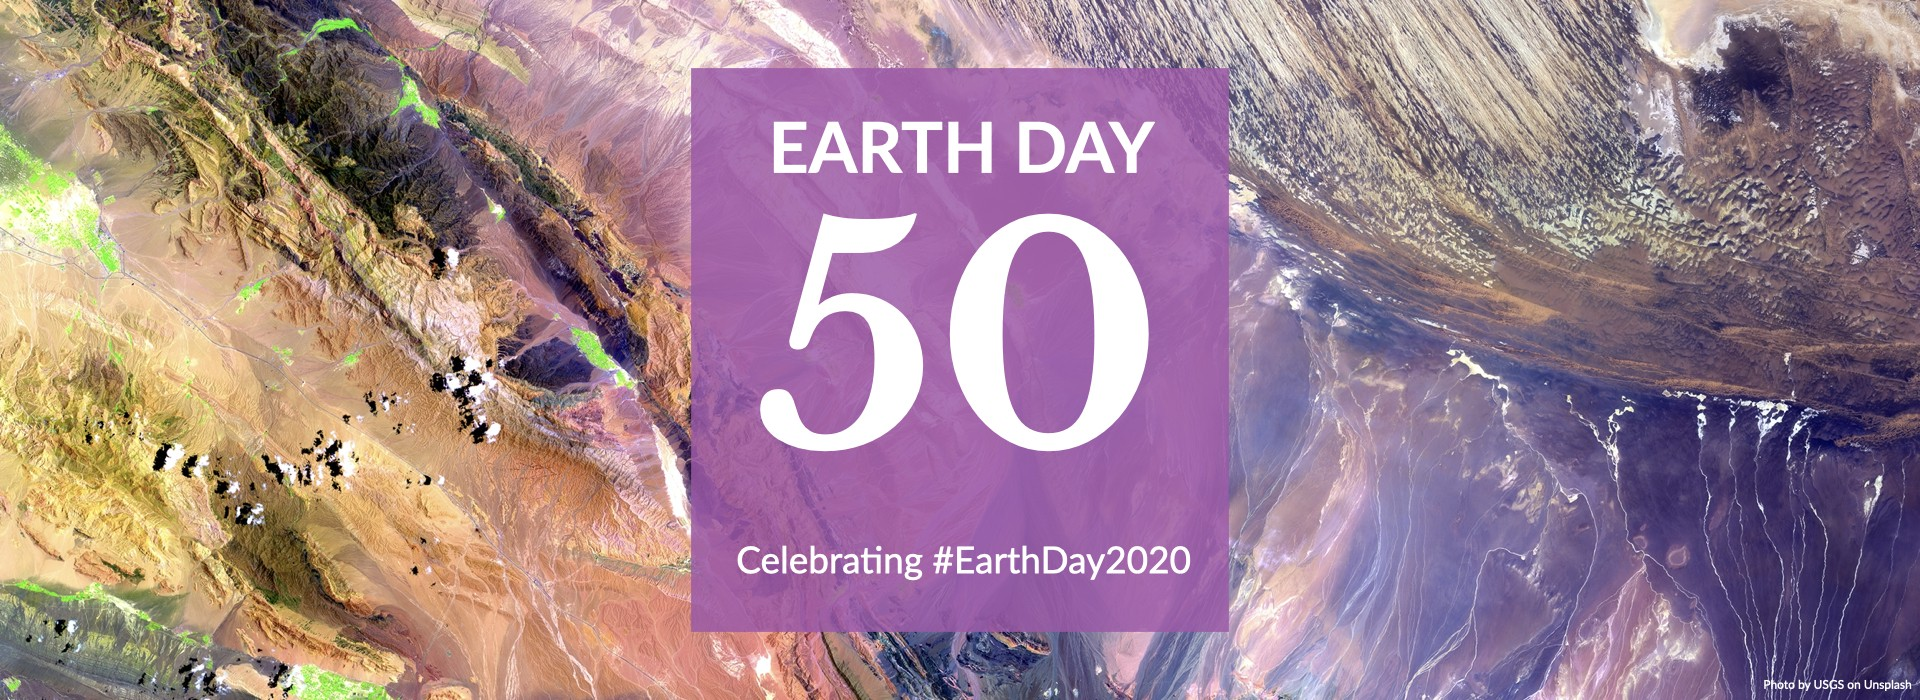 12 things to do this Earth Day while we are all at home